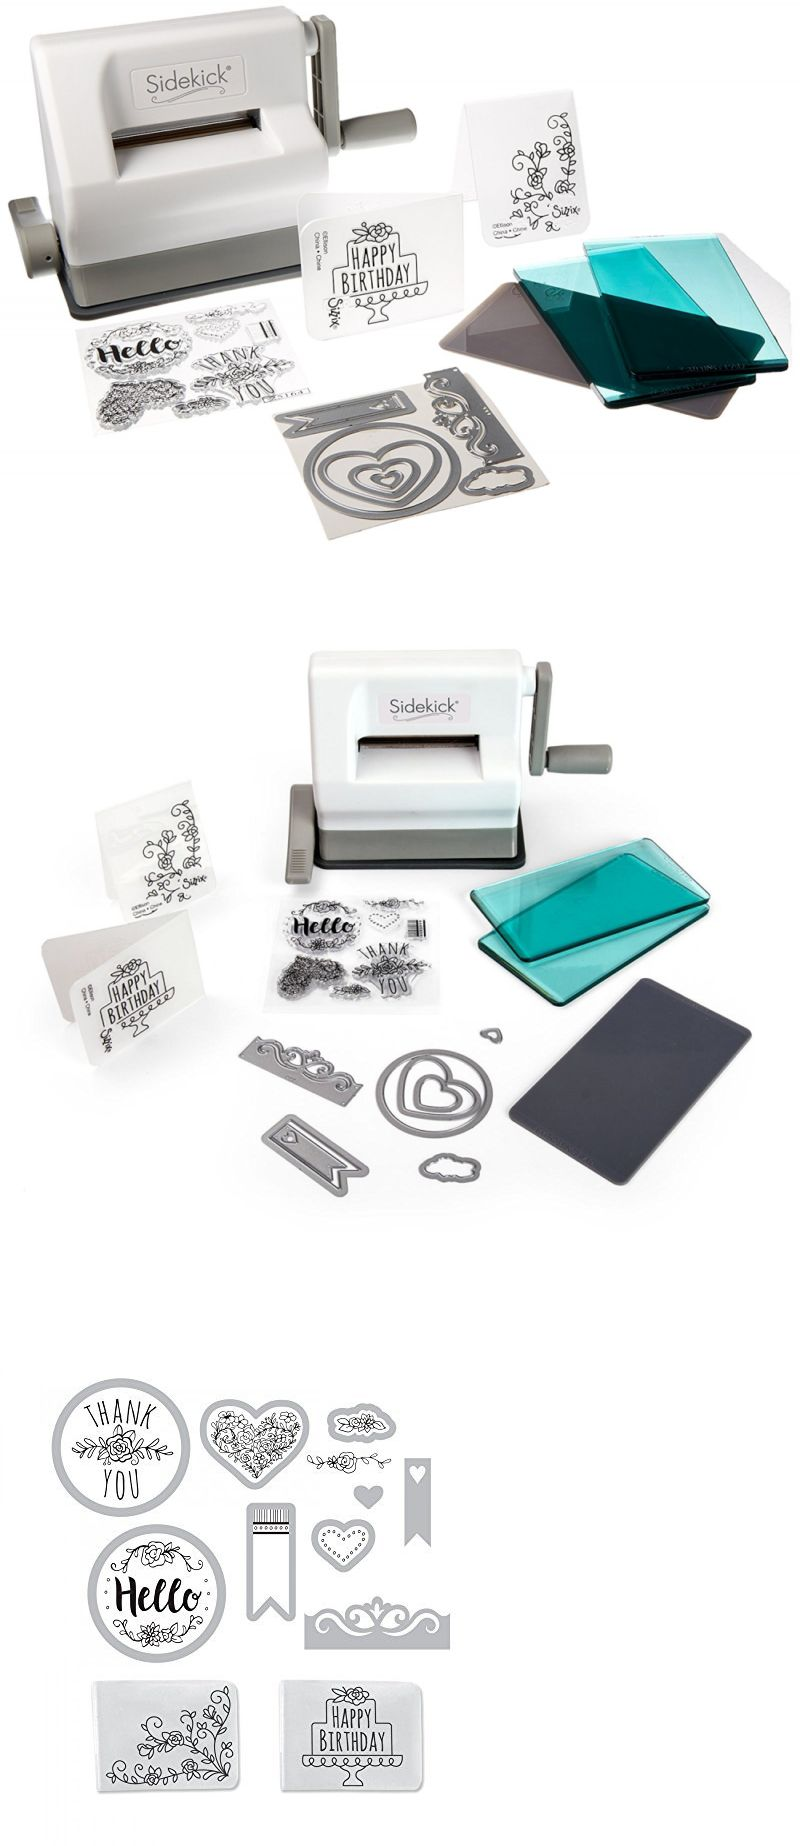 Emboss... White and Gray with Aqua Cutting Plates Sizzix Sidekick Starter Kit